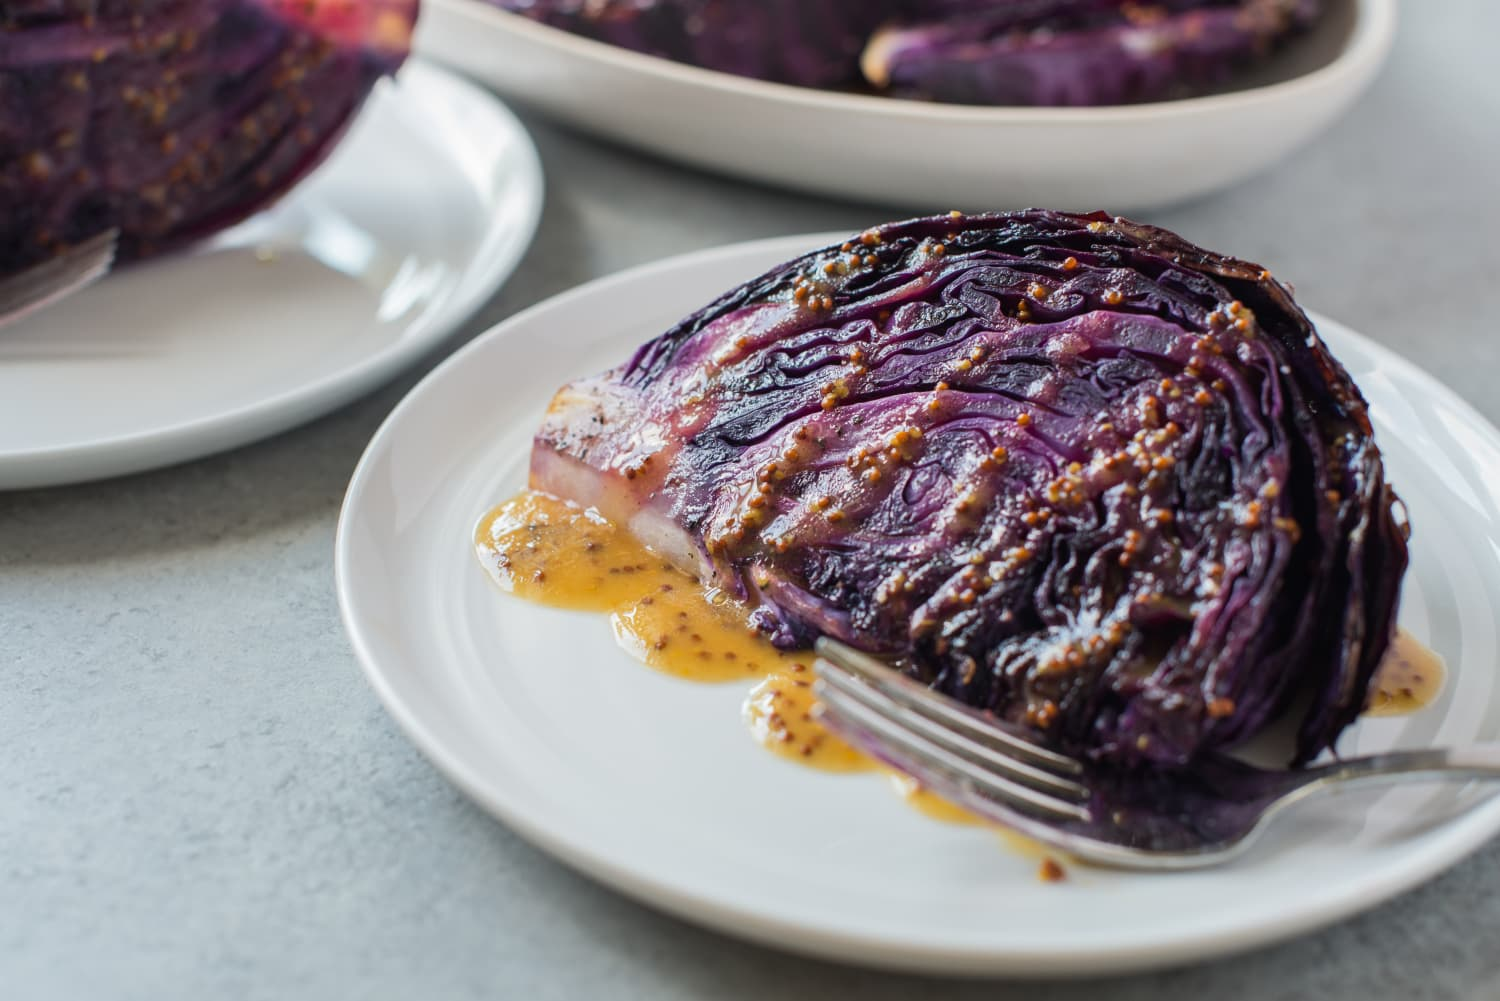 Roasted Cabbage with Mustard Vinaigrette Is the Side Dish That Steals the Show